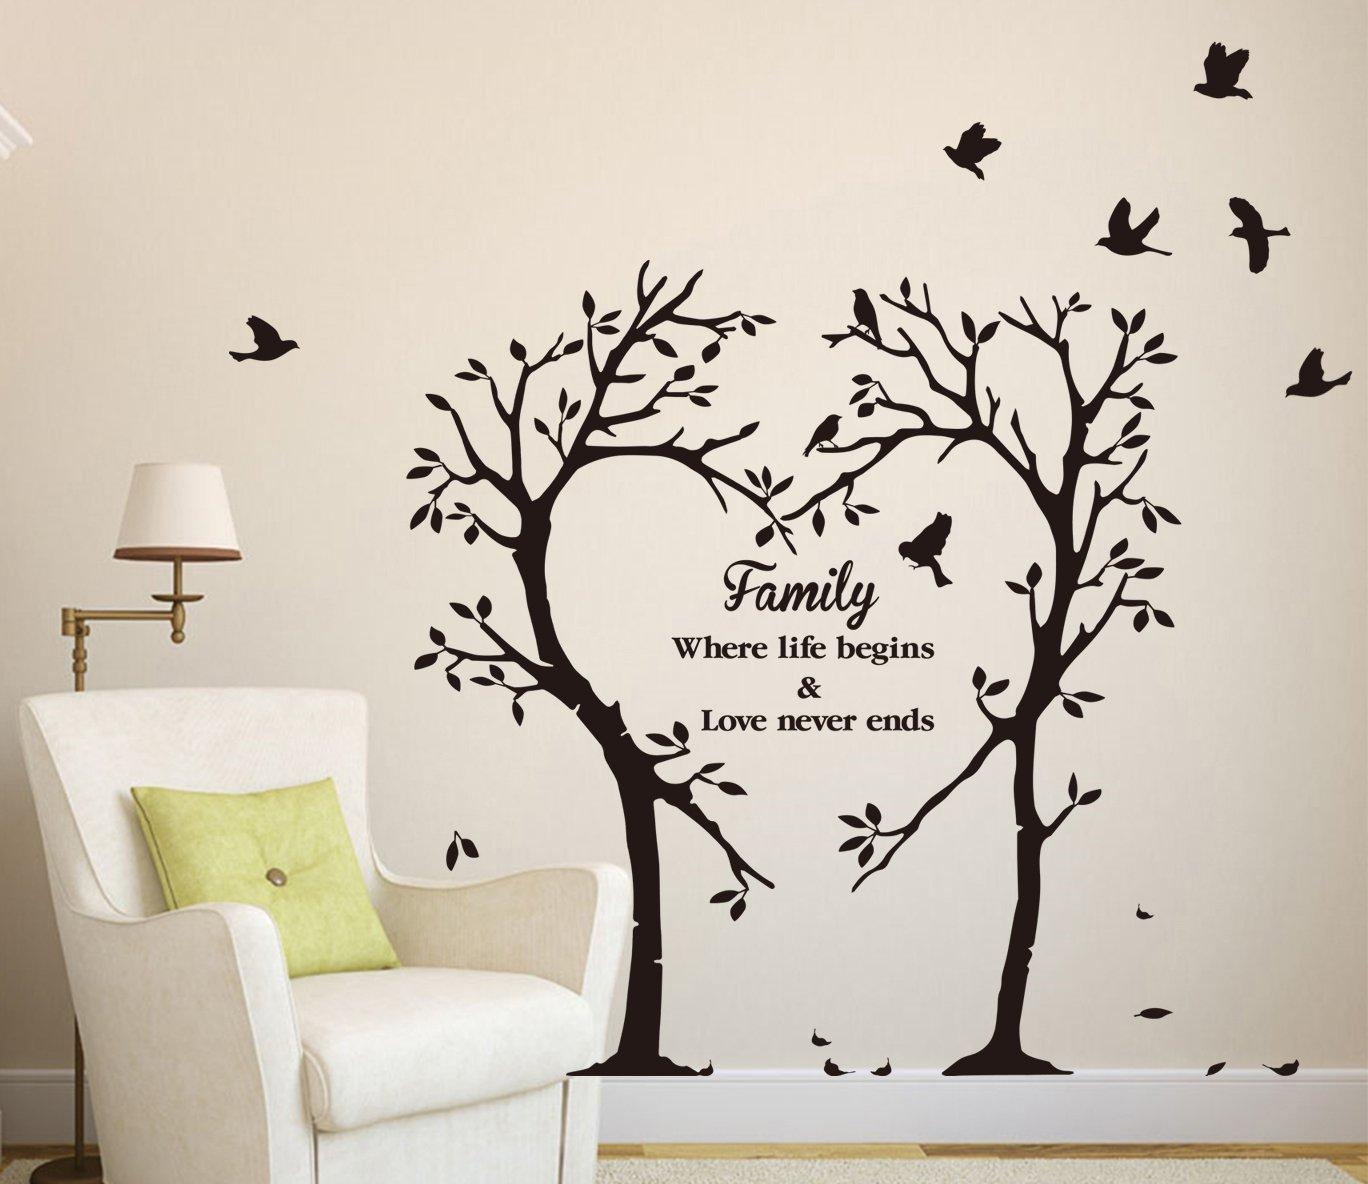 Large Family Inspirational Love Tree Wall Art Sticker, Wall Inside Tree Of Life Wall Art Stickers (View 3 of 20)